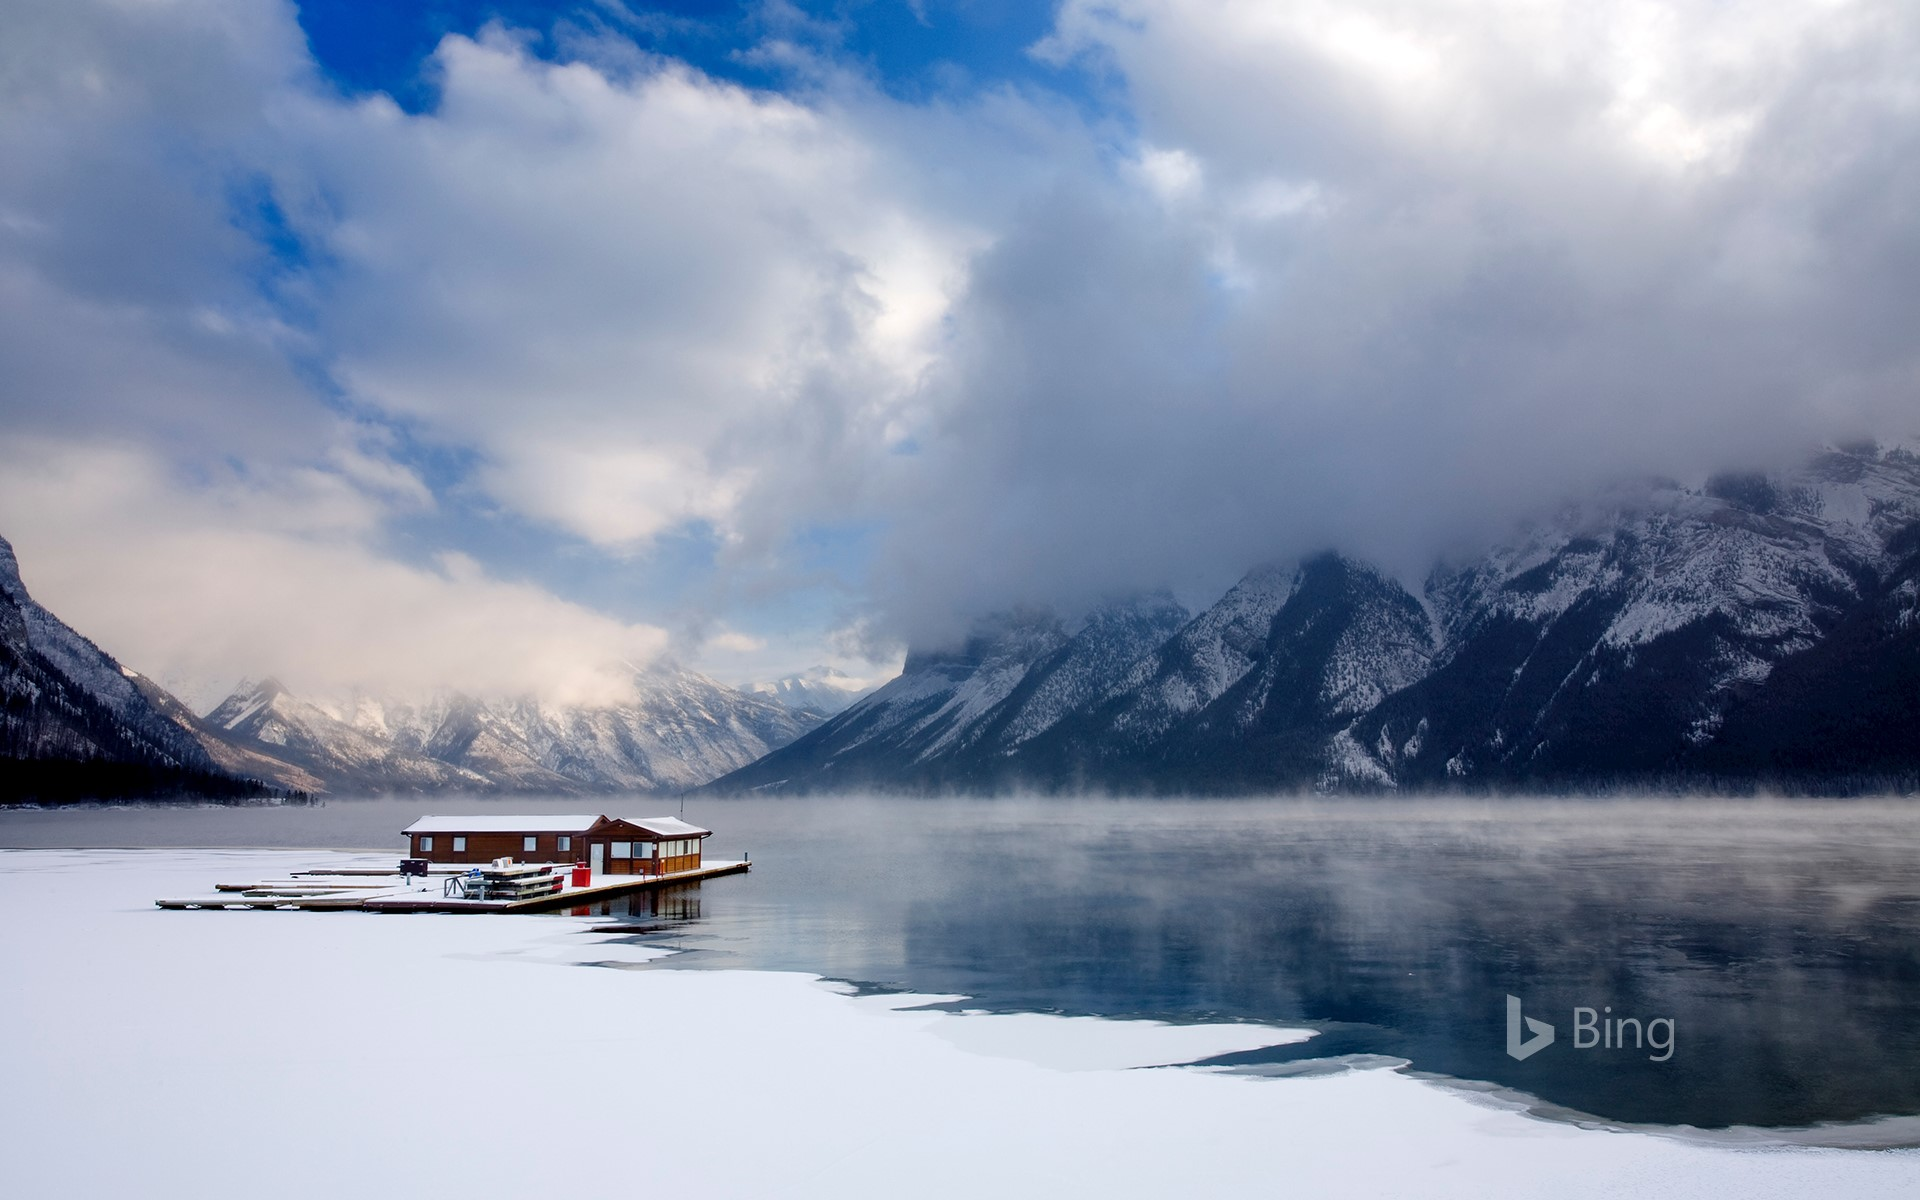 Boathouse on Lake Minnewanka in Banff National Park, Alberta, Canada